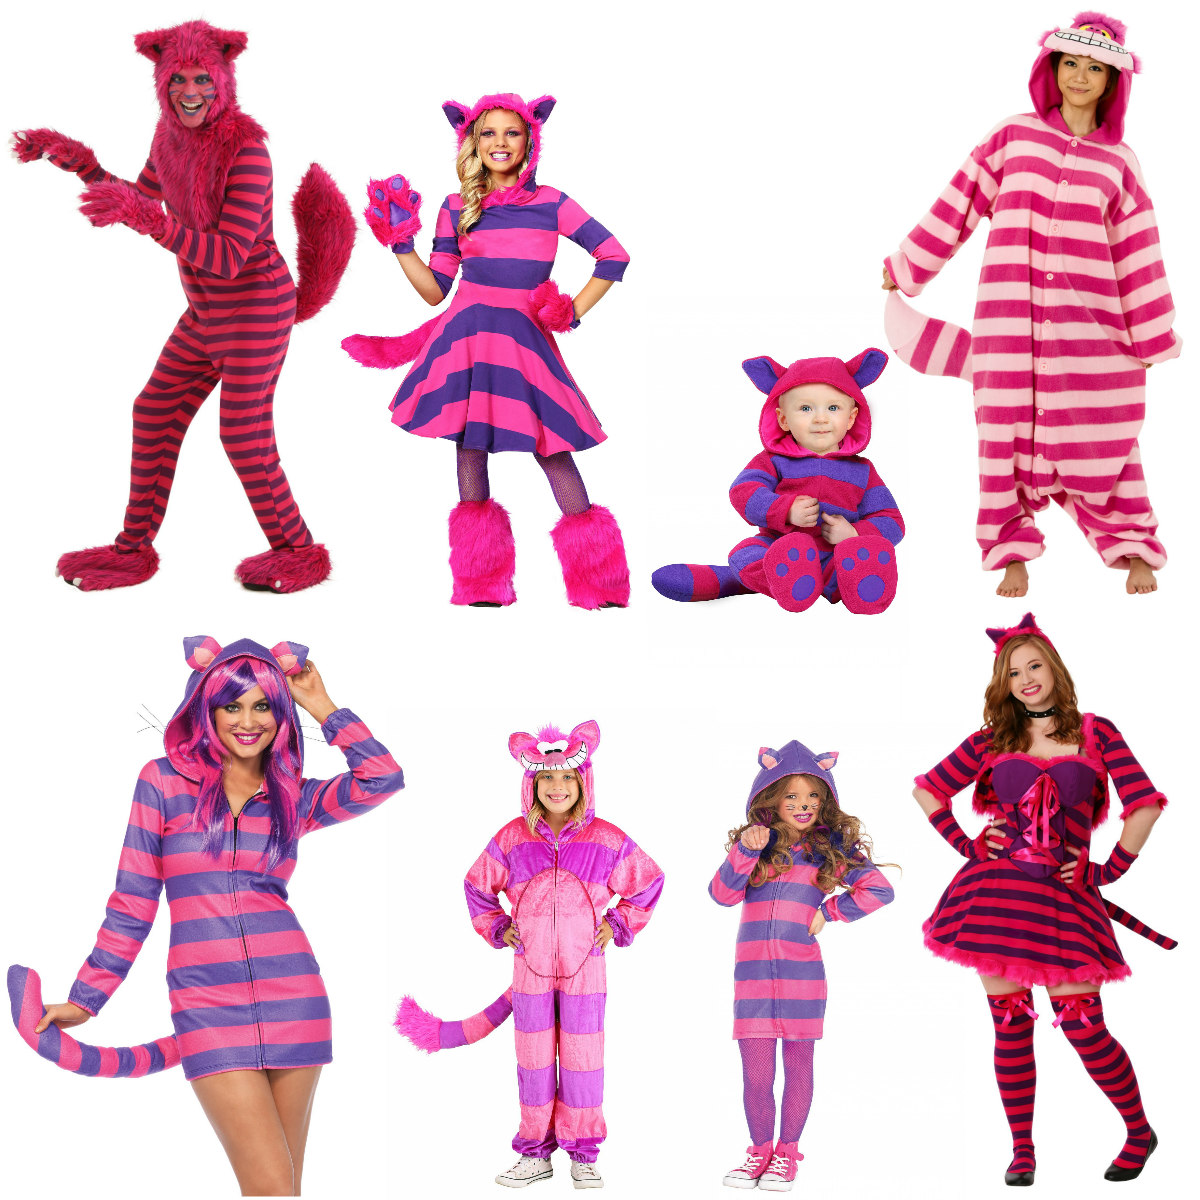 Mischievous Cheshire Cat Costumes